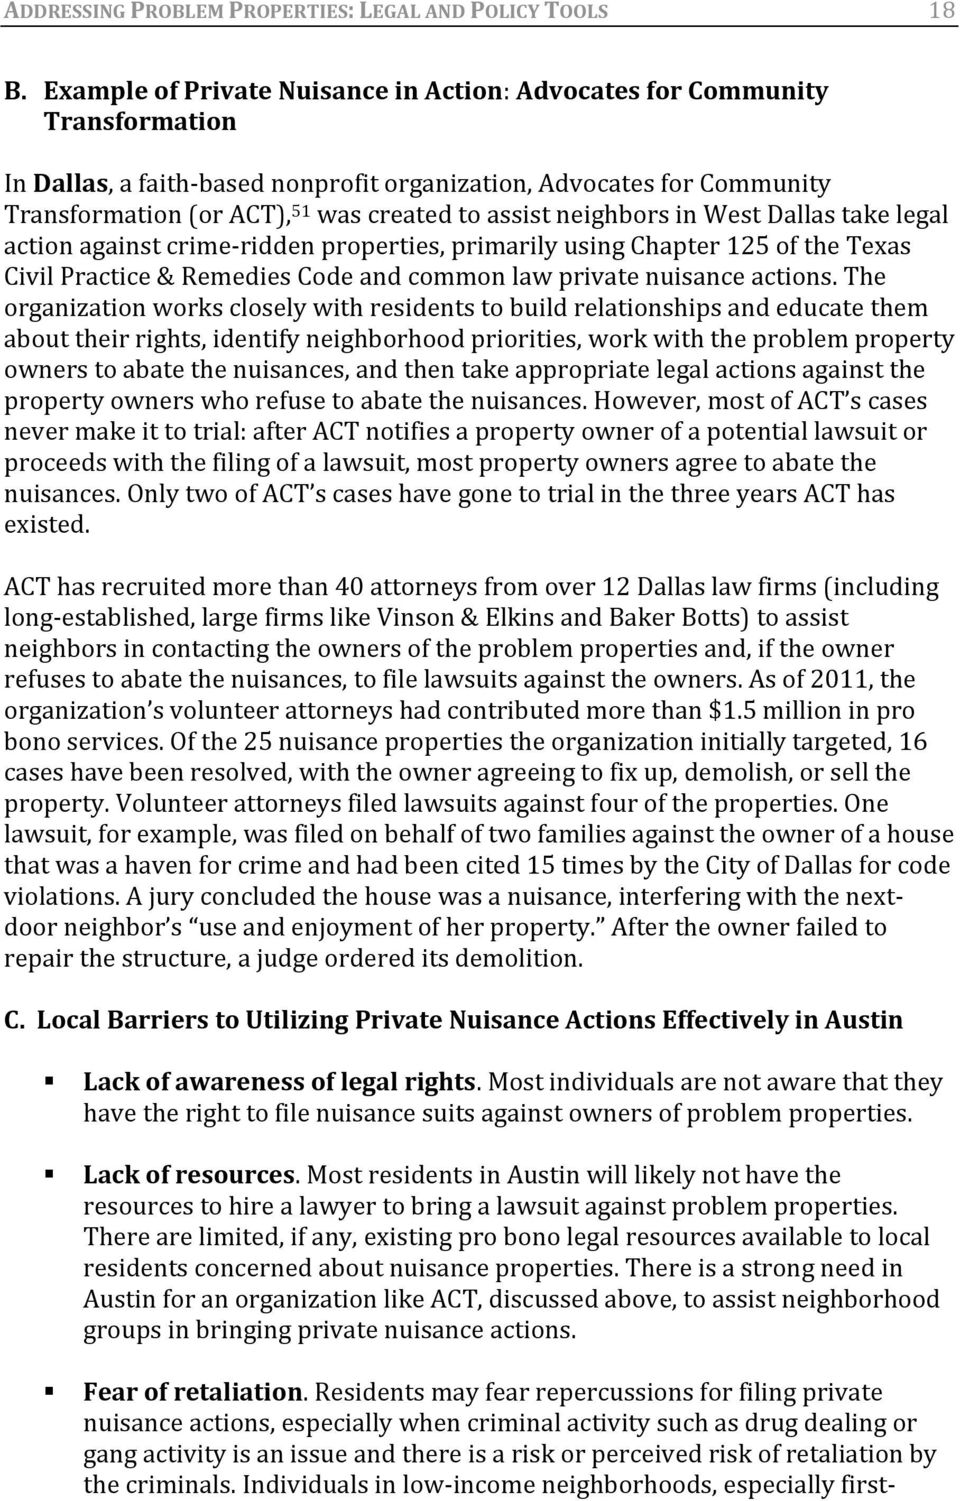 assist neighbors in West Dallas take legal action against crime ridden properties, primarily using Chapter 125 of the Texas Civil Practice & Remedies Code and common law private nuisance actions.